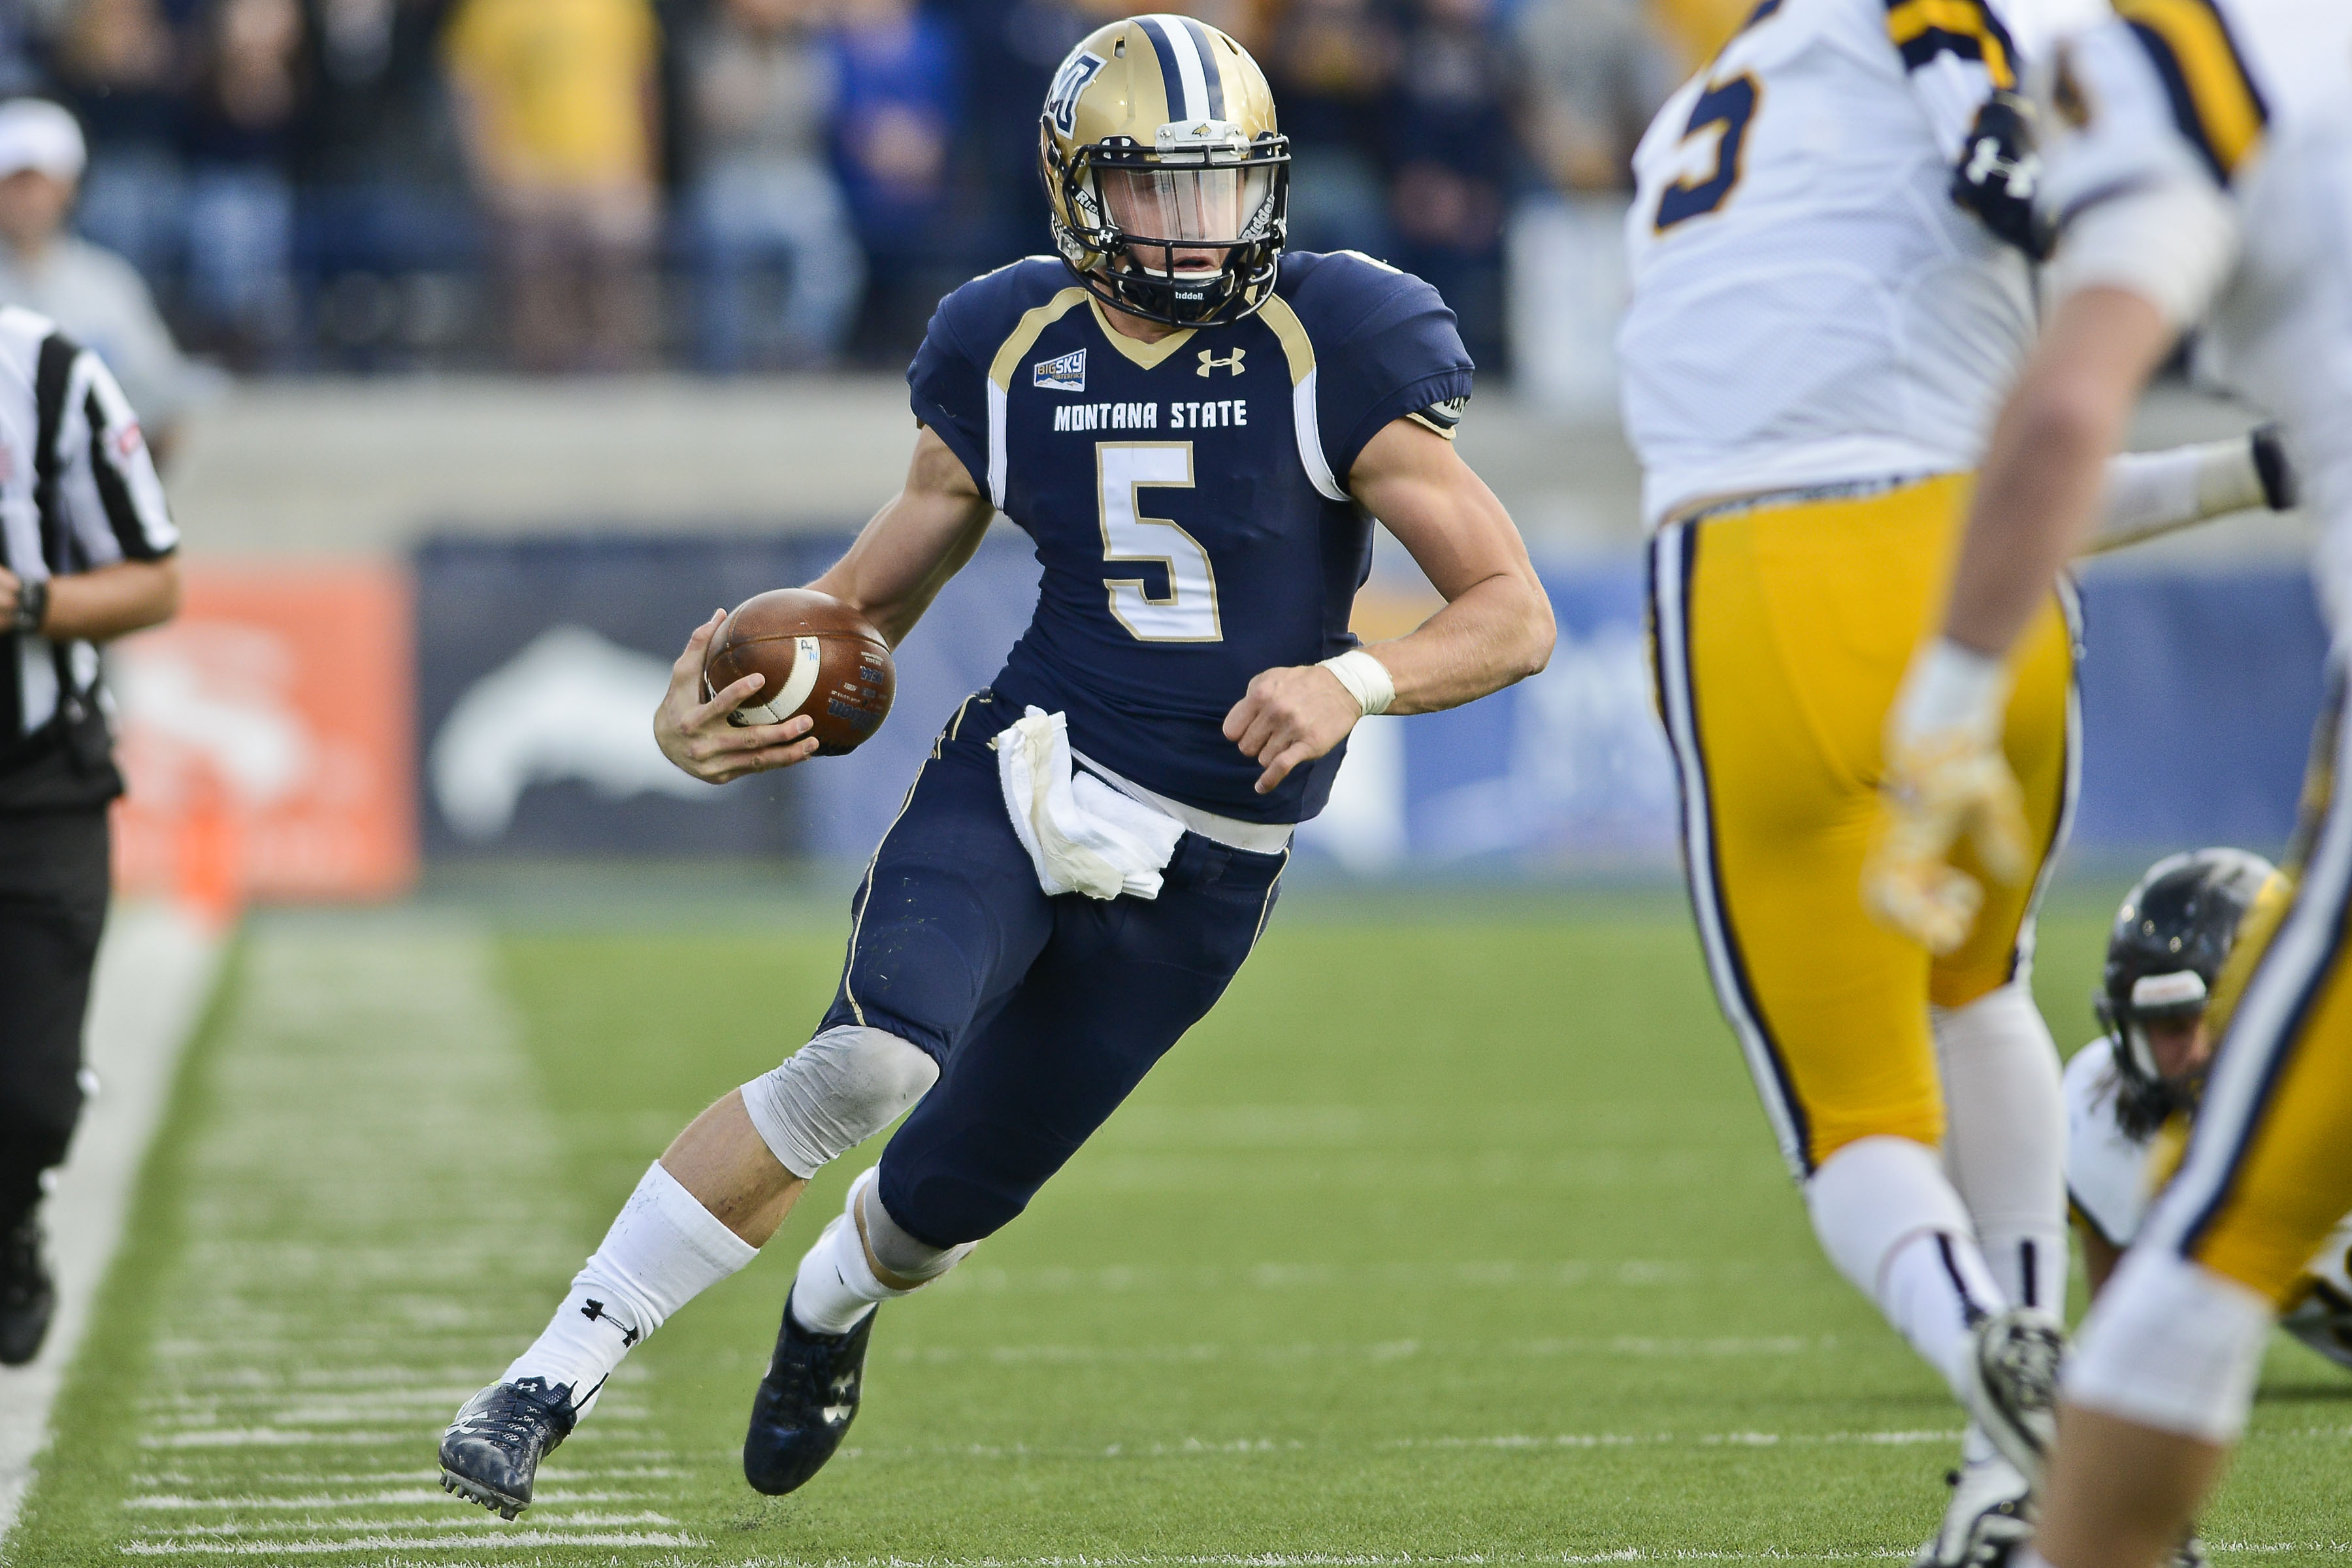 FILE - In this Saturday, Oct. 24, 2015 file photo, Montana State quarterback Dakota Prukop runs the ball against East Tennessee State during the first half of an NCAA college football game in Bozeman, Mont. (Adrian Sanchez-Gonzalez/Bozeman Daily Chronicle